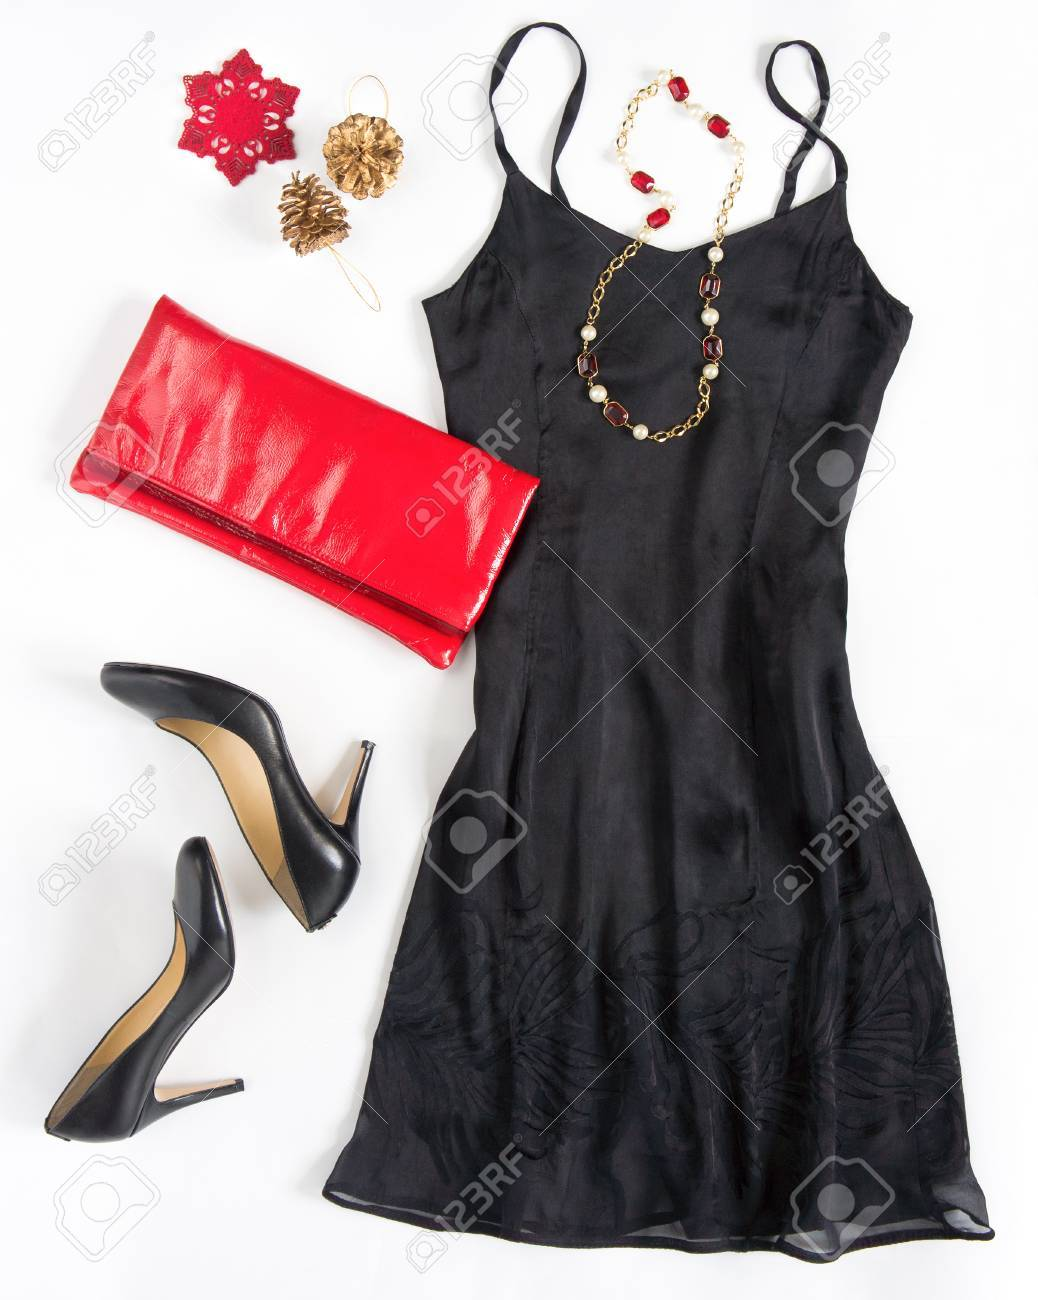 Christmas Party Outfi. Cocktail Dress Outfit, Night Out Look.. Stock ...